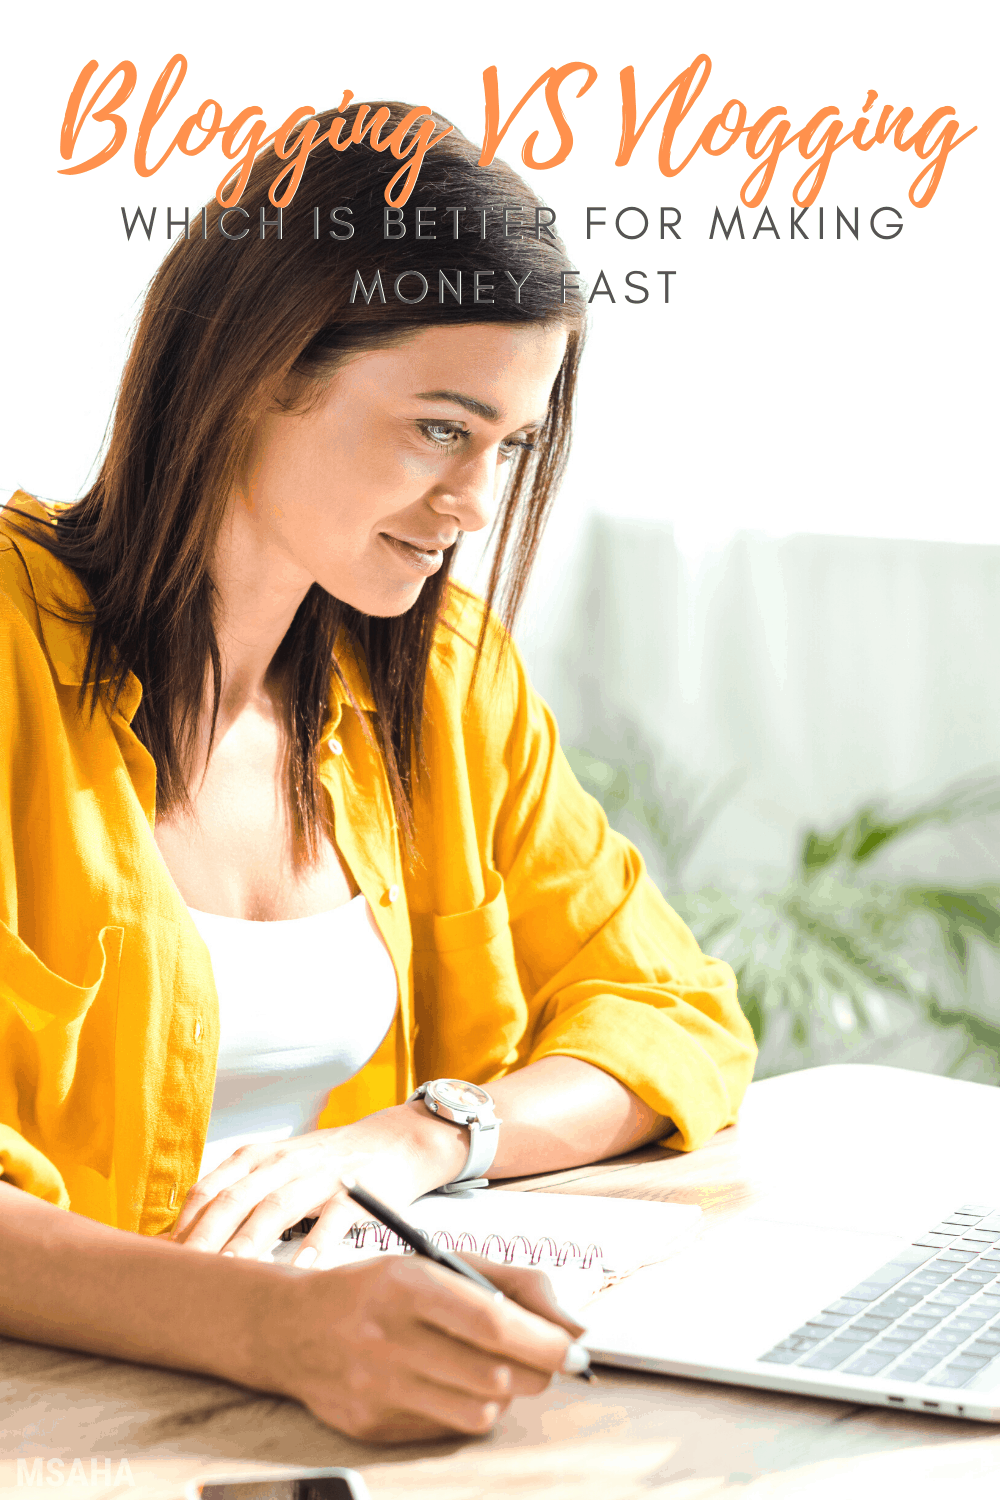 Blogging vs vlogging, what's the difference and how do they each make you money, fast. Learn all you need to know about them and their pros and cons. via @mystayathome